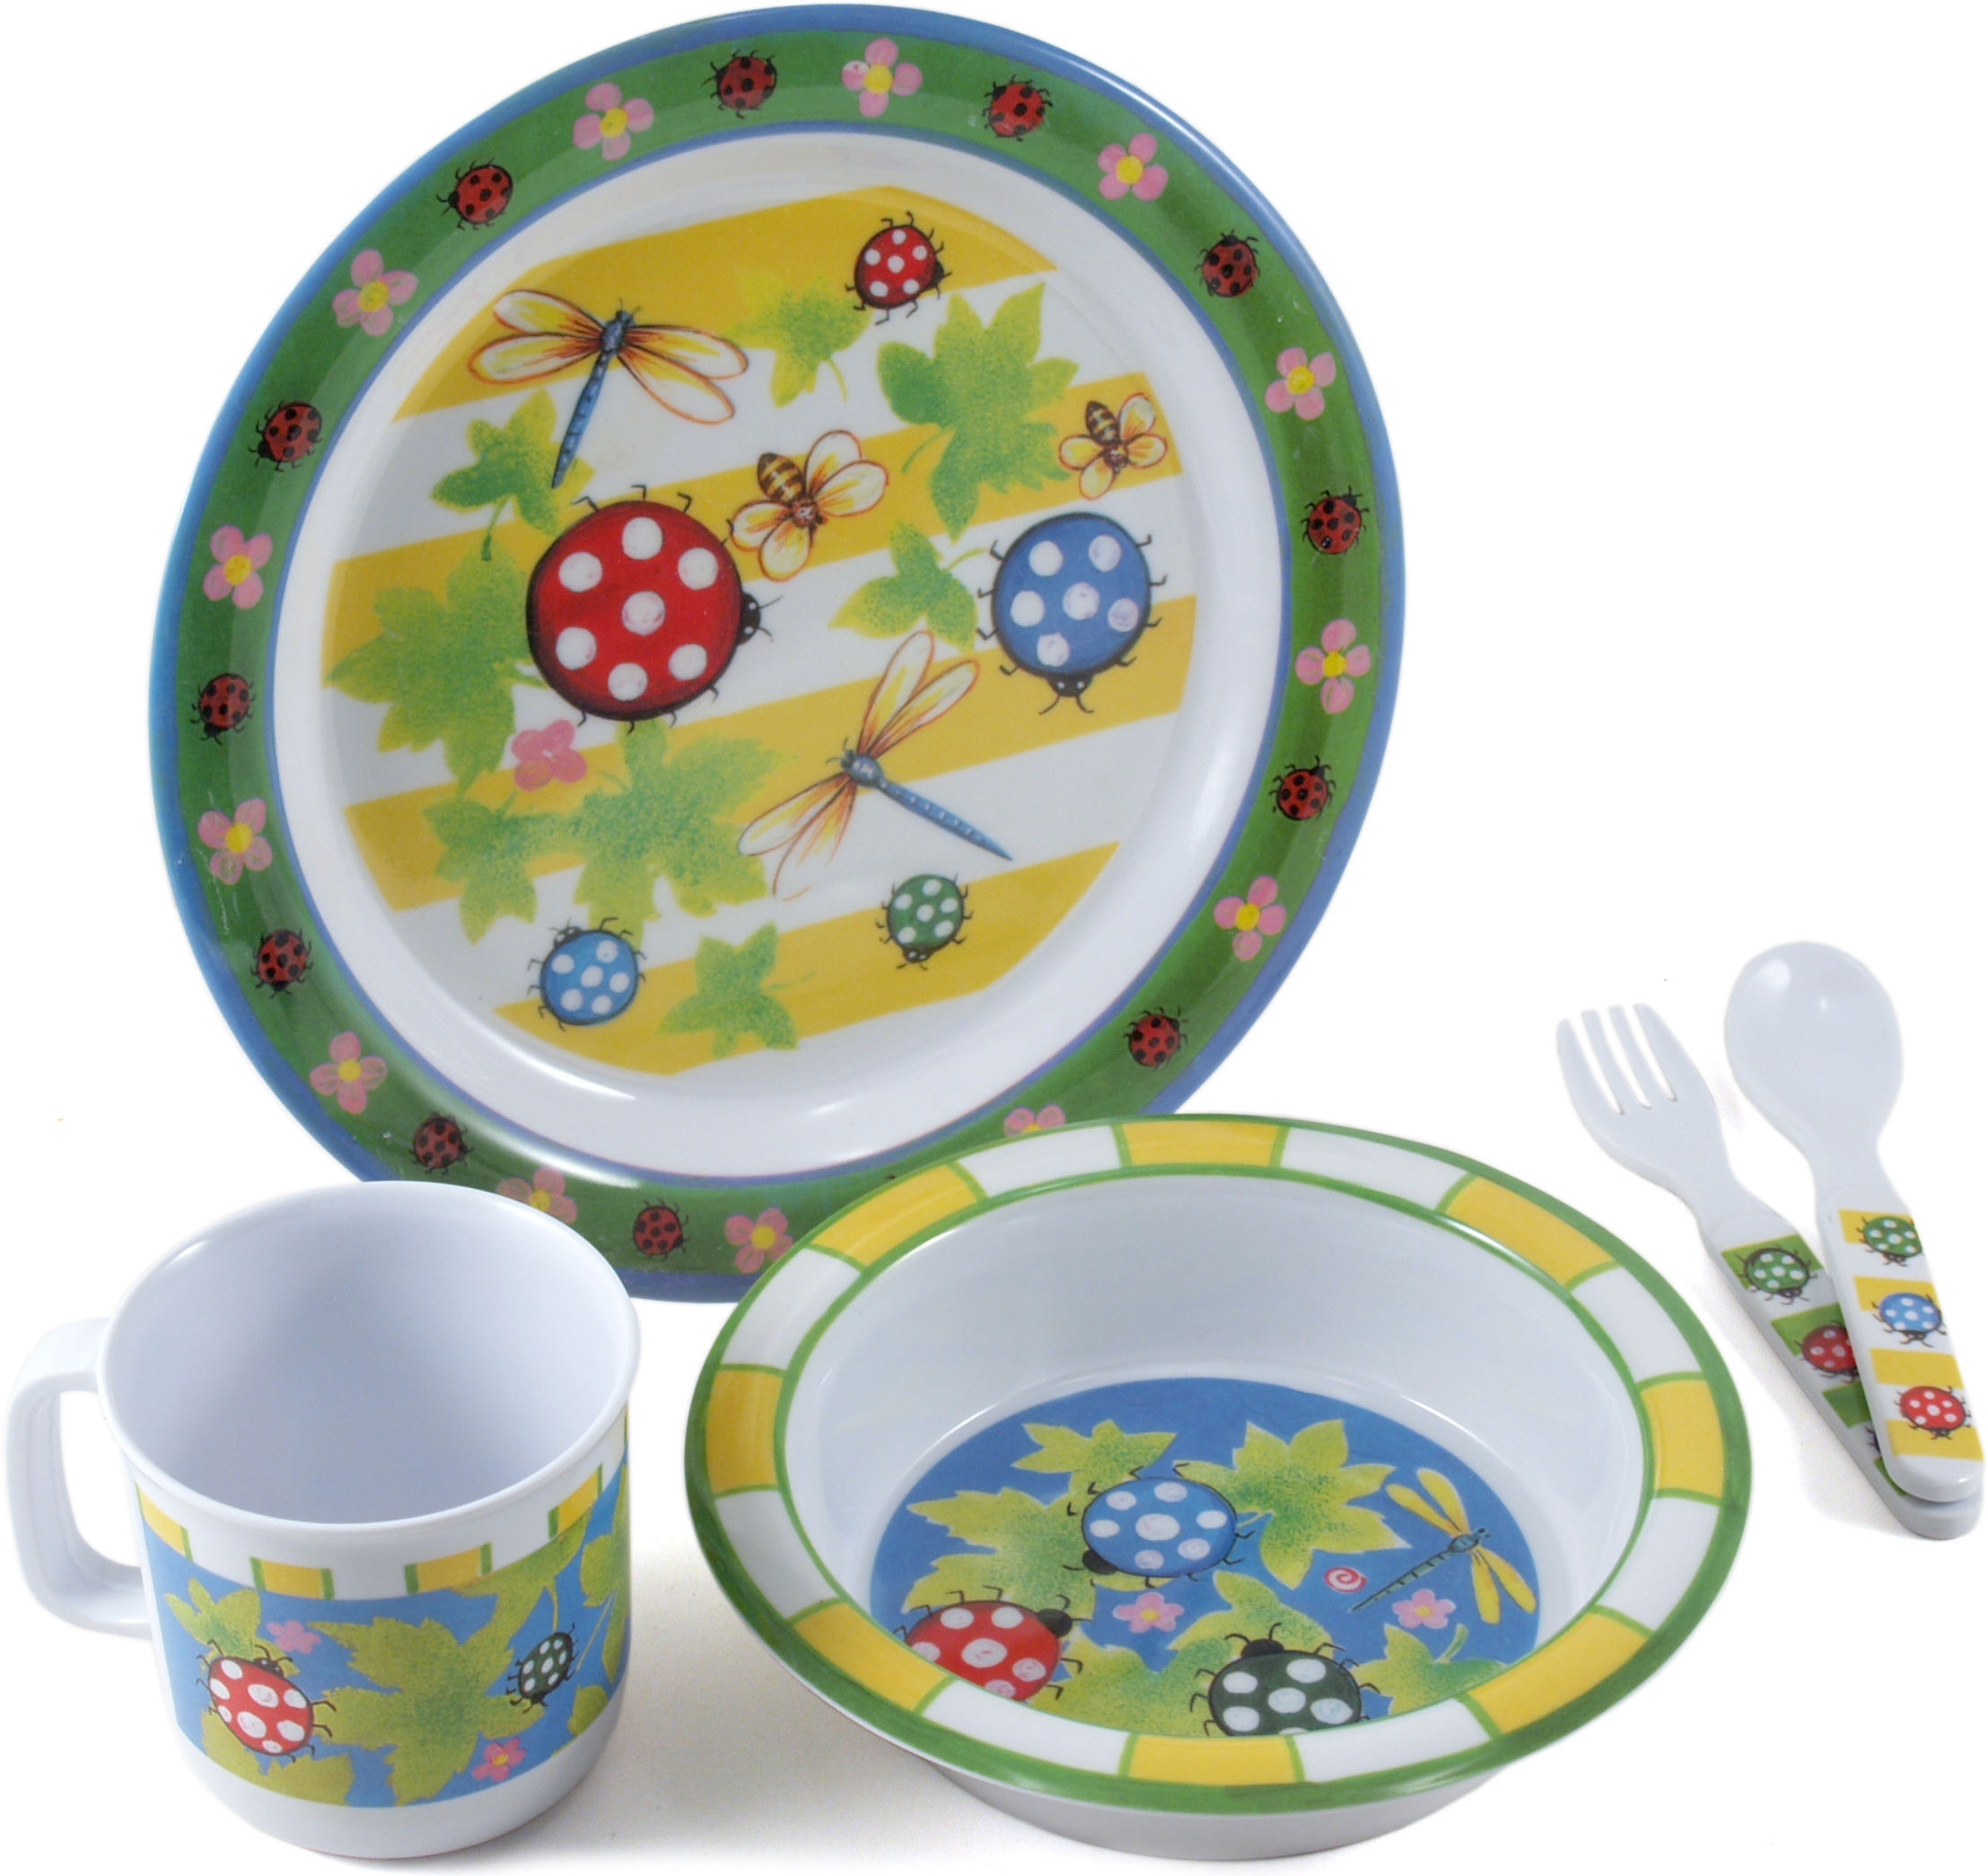 Home Essentials Kids Bugaboo Melamine 5 Piece Round Dinnerware Set